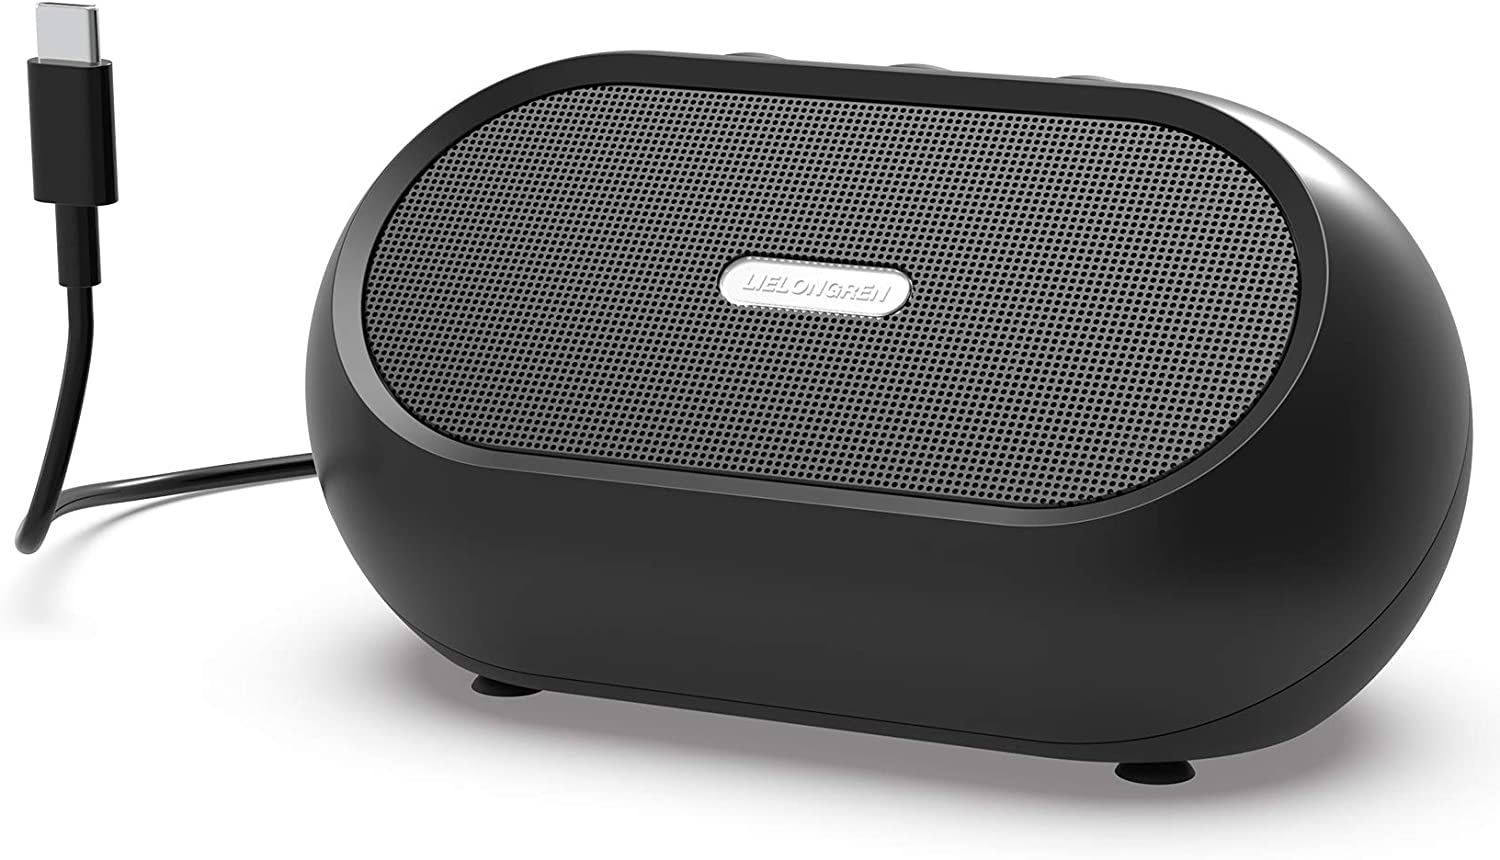 USB-C Computer Speaker, Laptop Speaker, PC Speaker for Windows Laptops, MacBook, Chromebook, Compact Size with 8W Loud Volume, Rich Bass and Hi-Quality Sound - USB Type A to C Converter Included